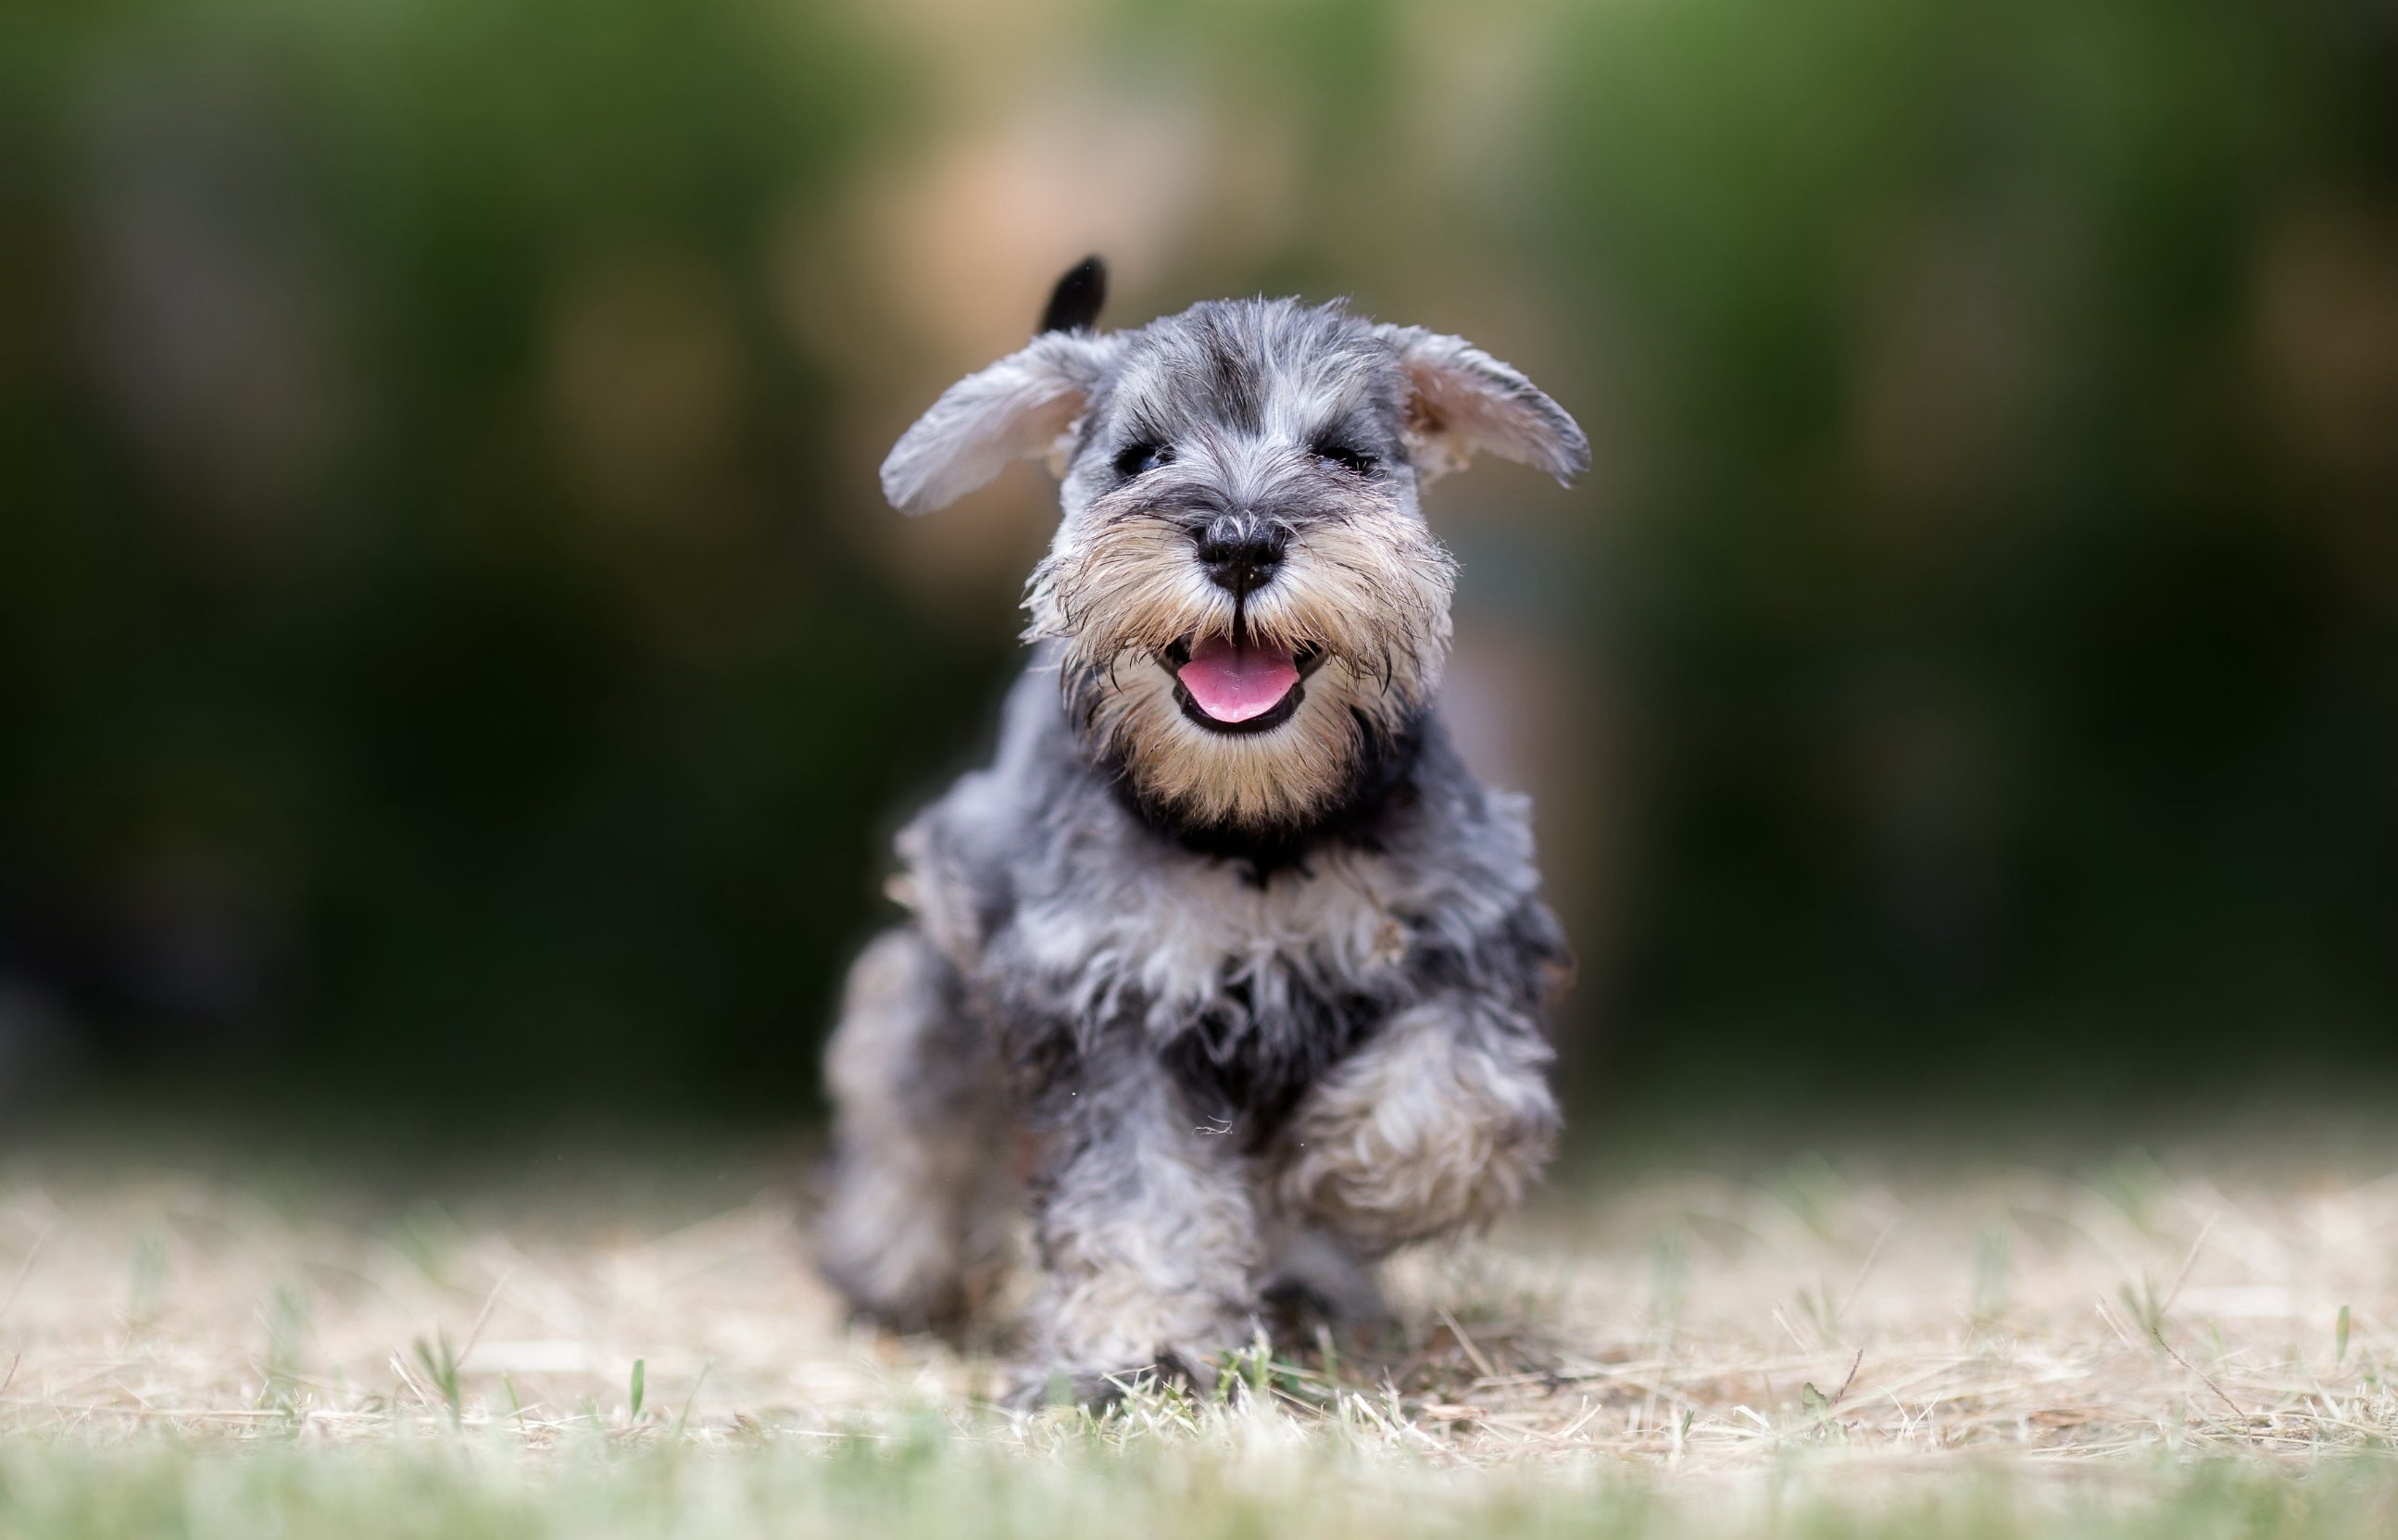 THE HISTORY OF THE SCHNAUZER